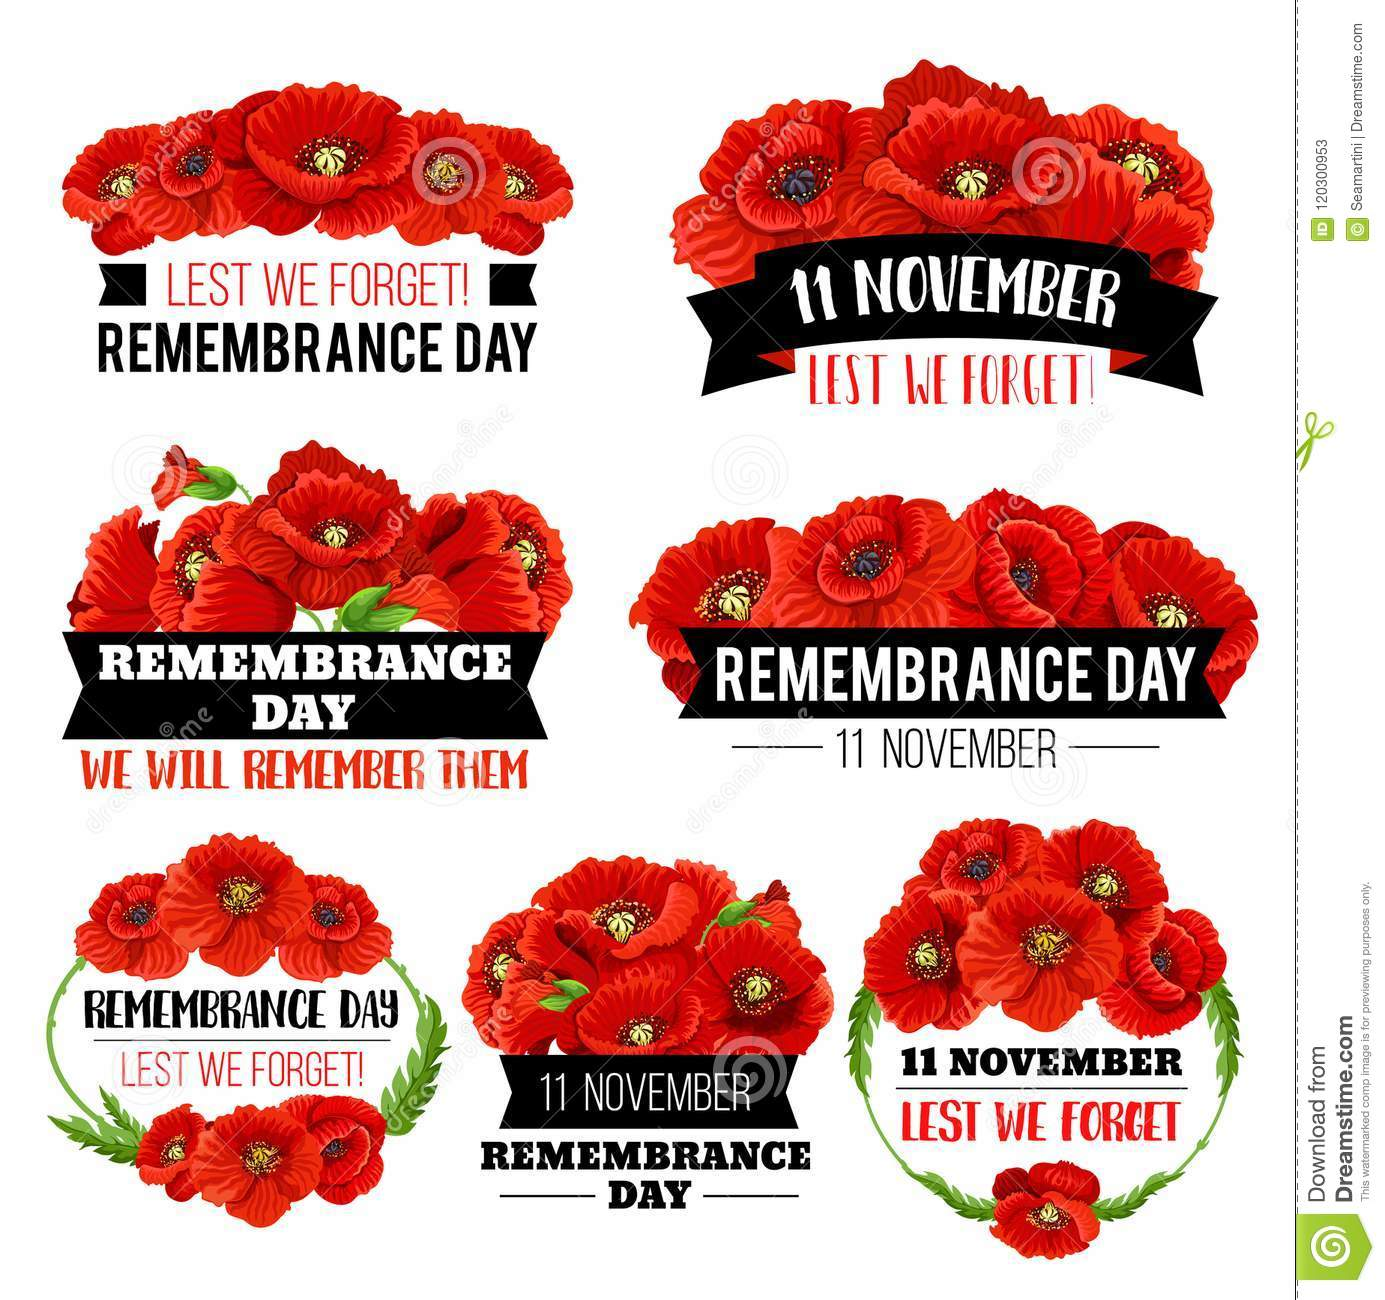 Red poppy flower symbol for remembrance day design stock vector red poppy flower symbol for remembrance day design mightylinksfo